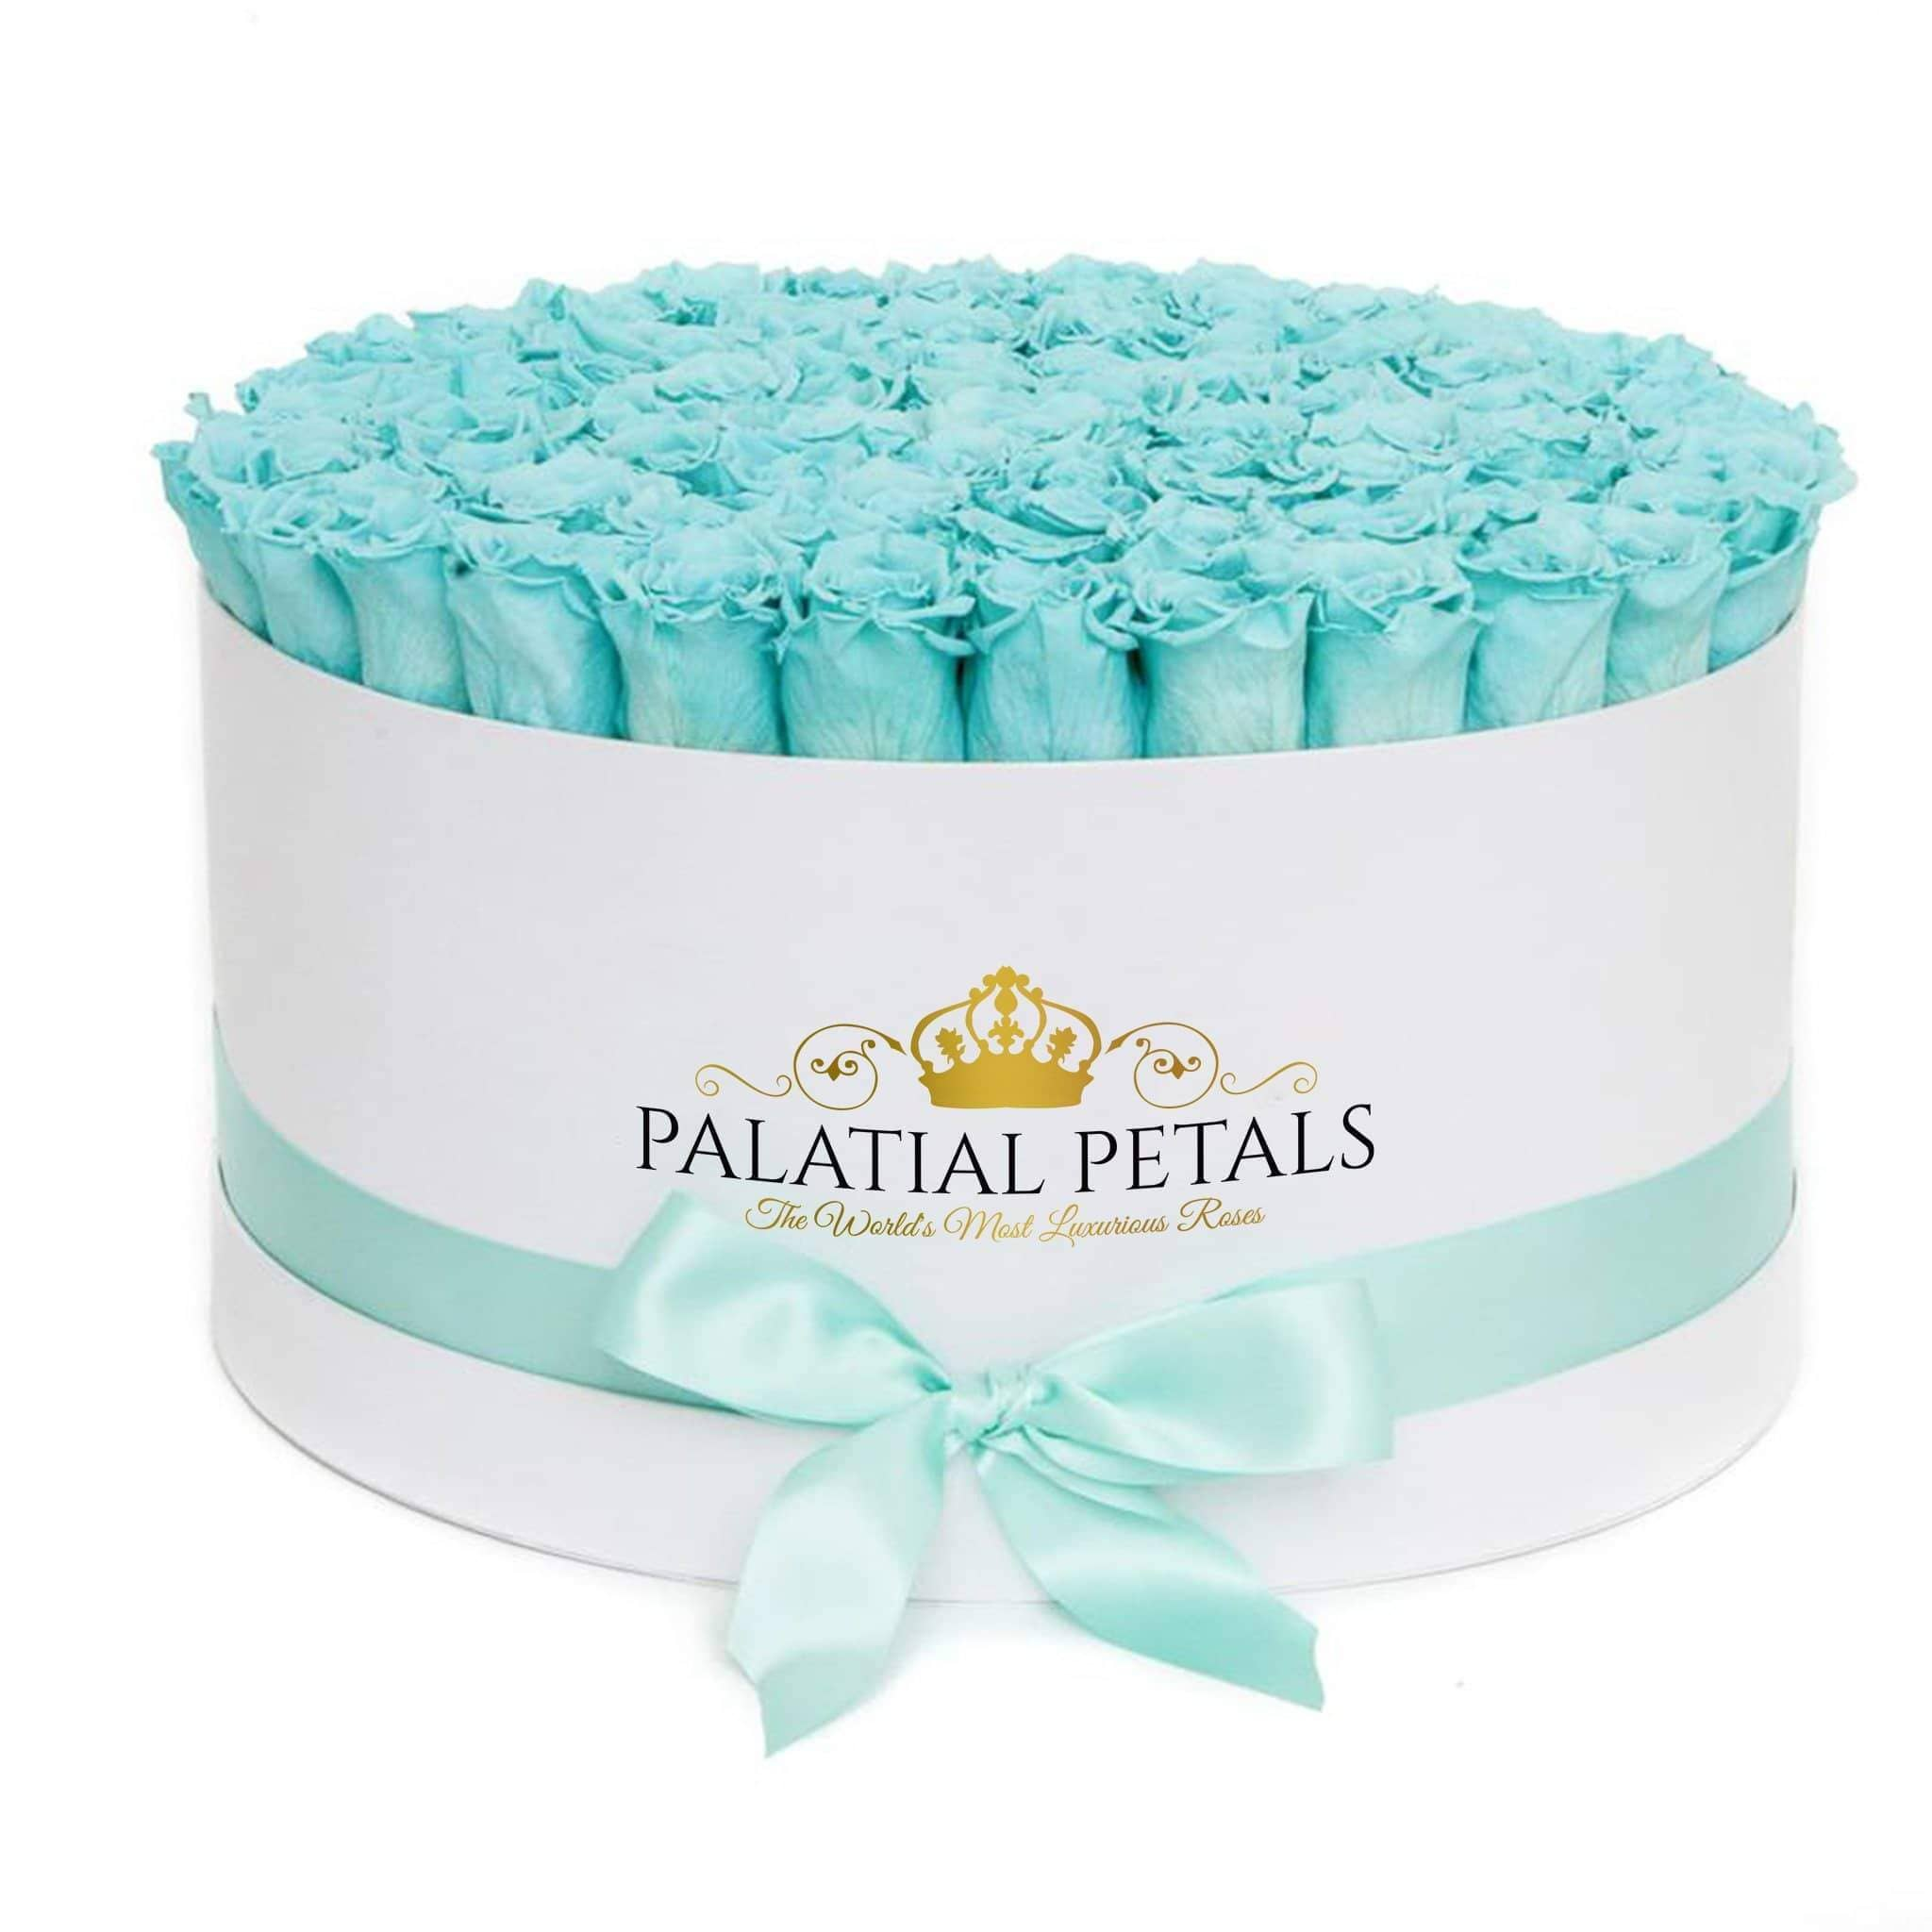 Tiffany Blue Roses That Last A Year - Deluxe Rose Box - Palatial Petals